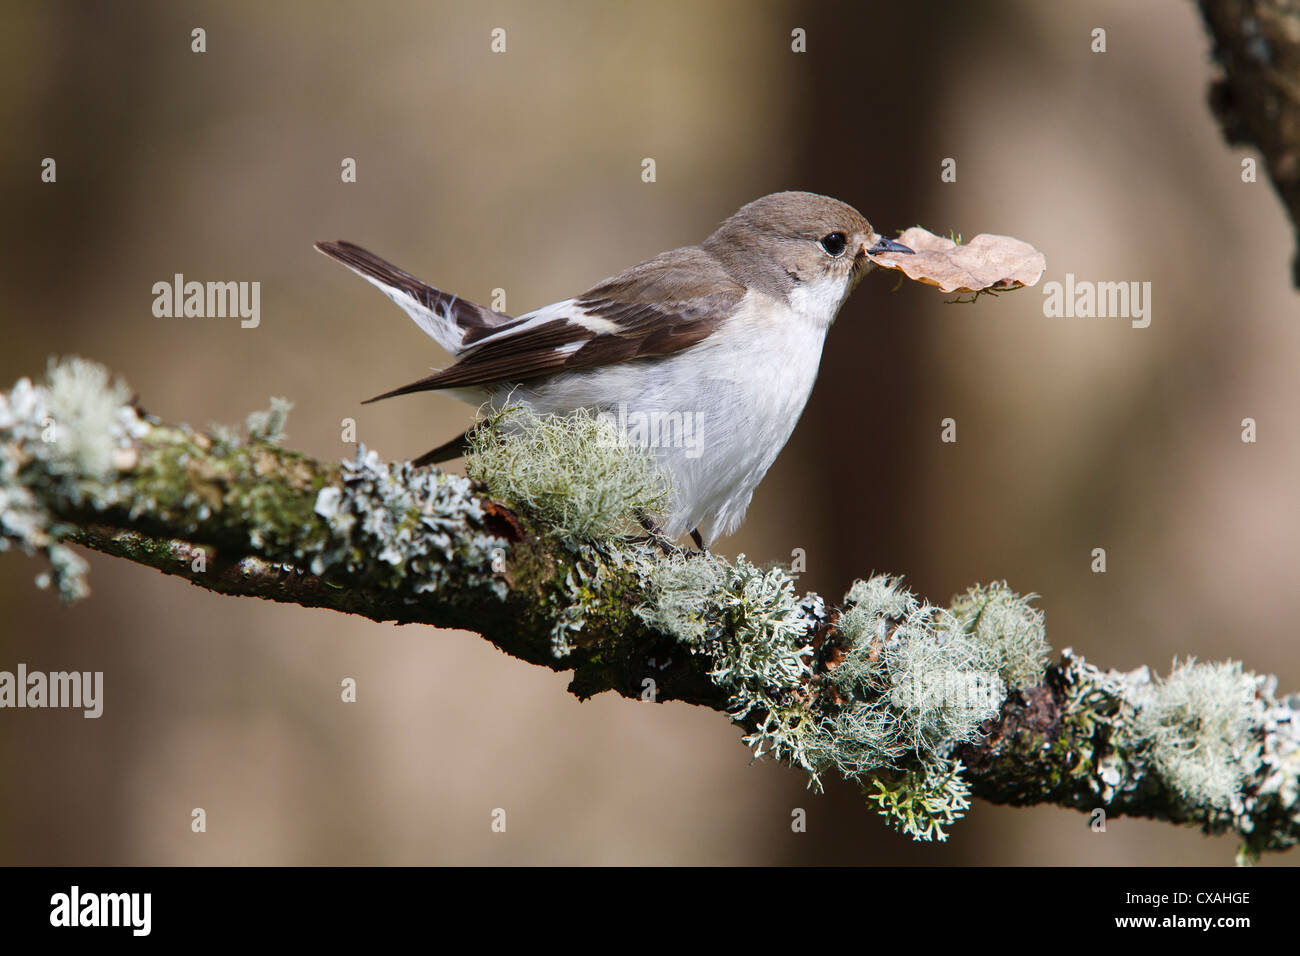 Female Pied Flycatcher (Ficedula hypoleuca) carrying a leaf for nesting material. Powys, Wales. May - Stock Image